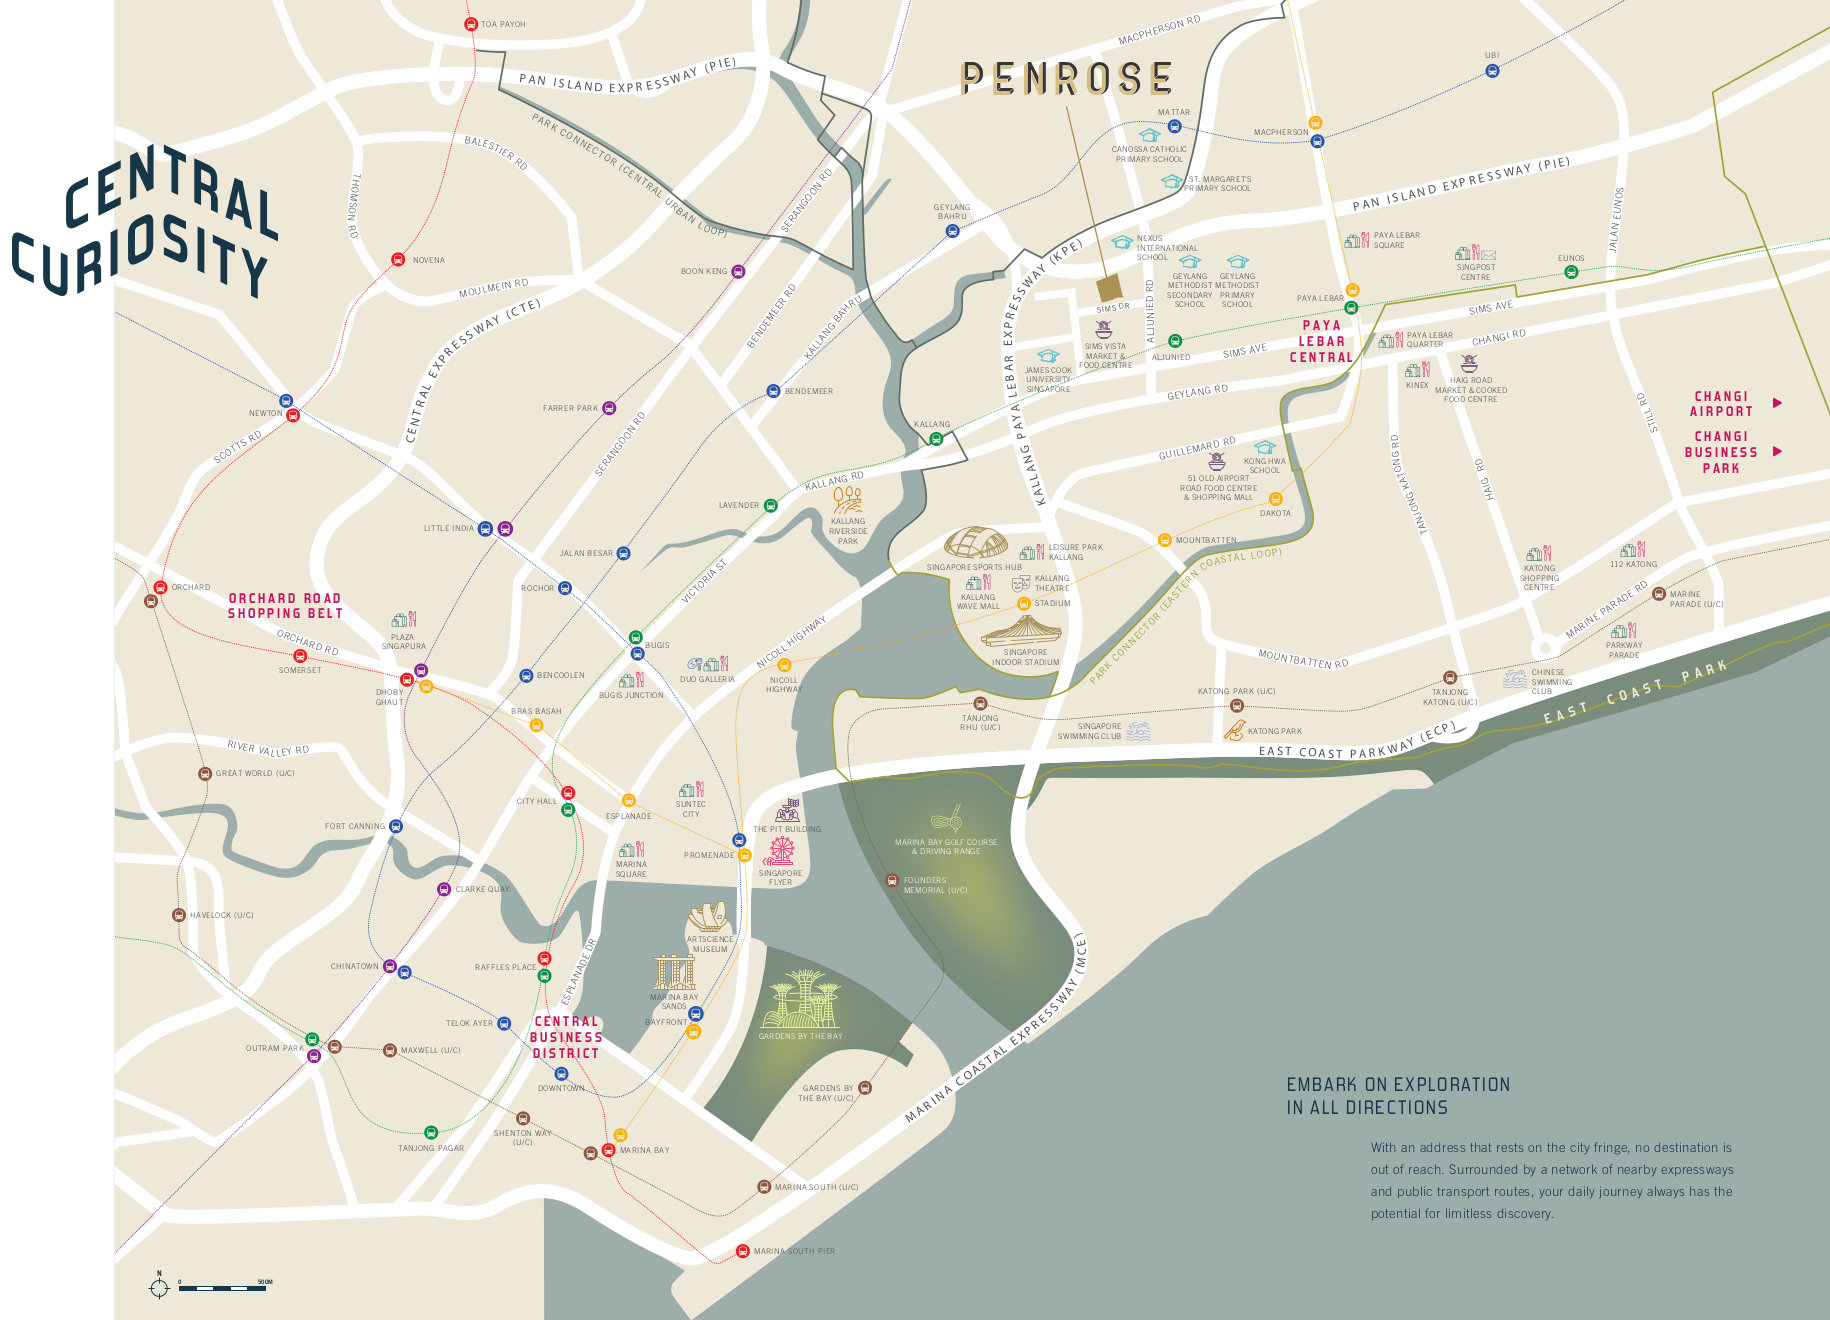 The Penrose Location Map & Amenities